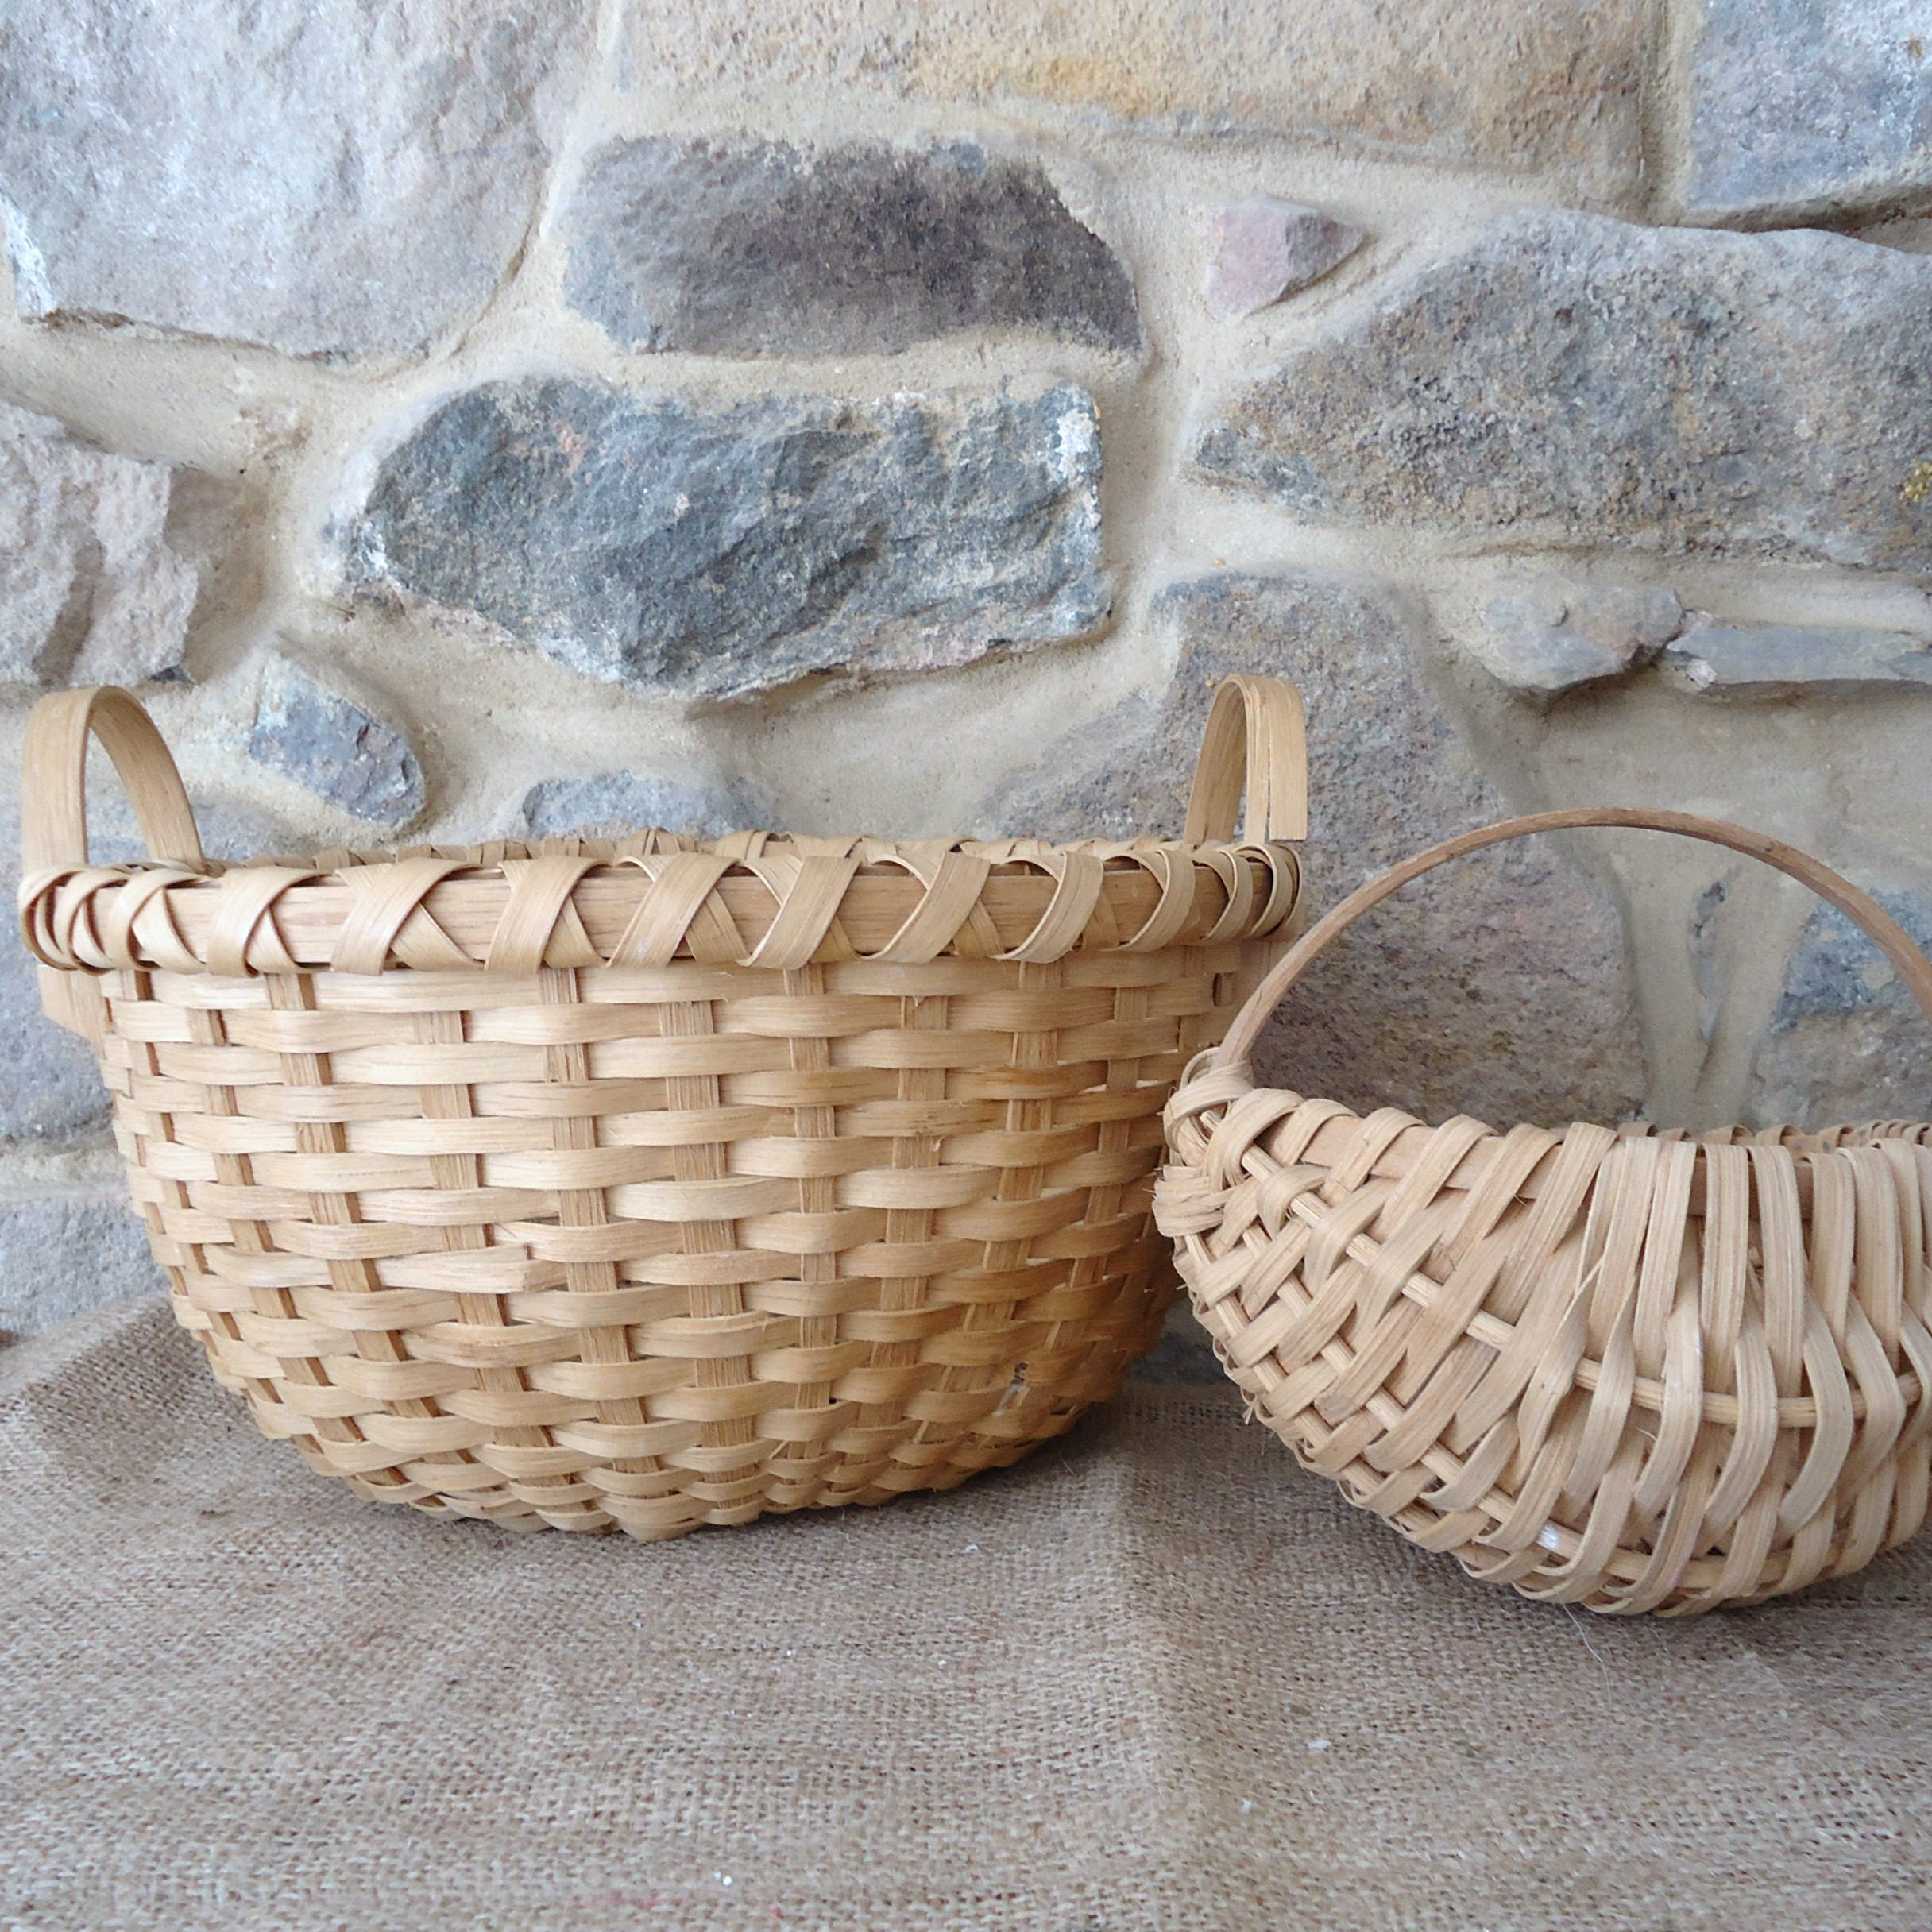 How To Hand Weave A Basket : Hand woven storage baskets egg basket split oak